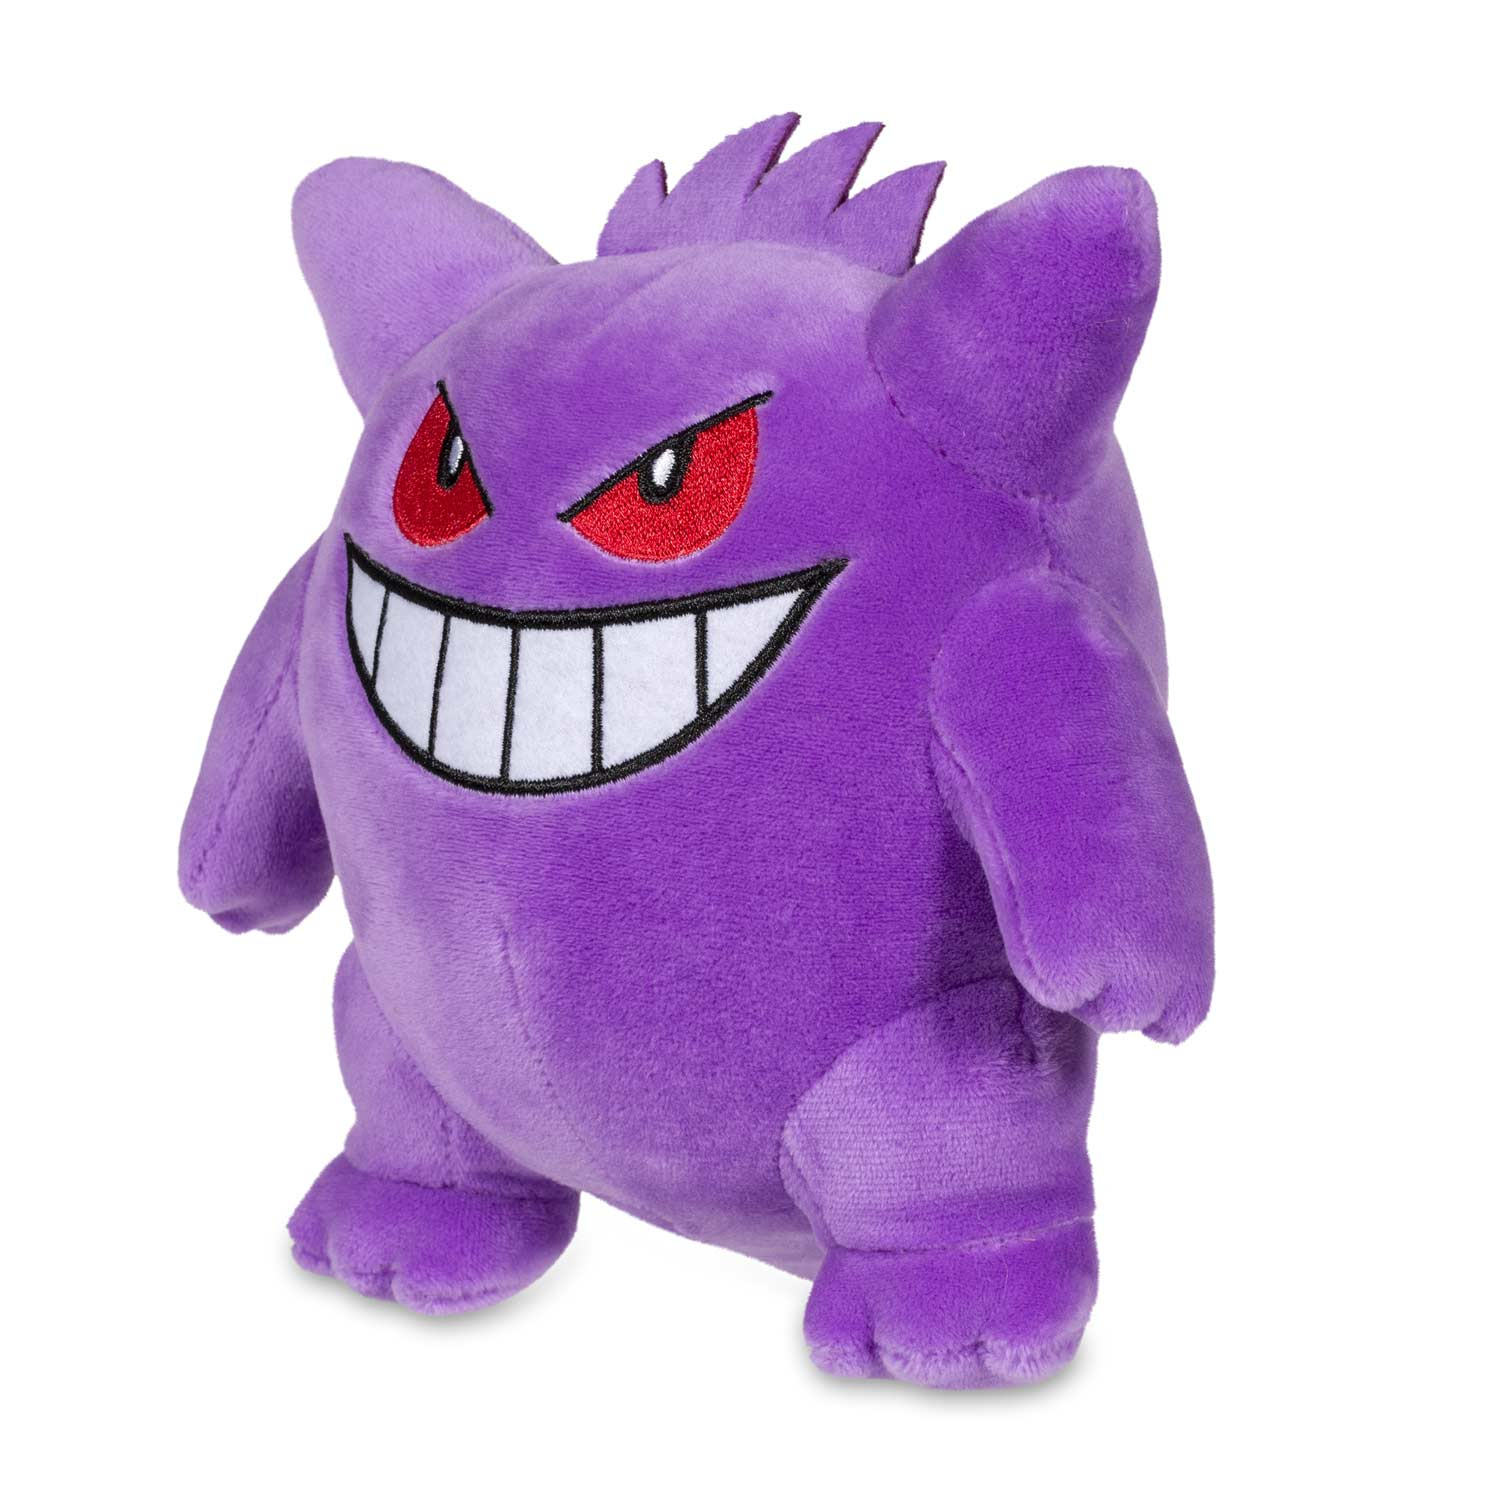 79b45a41805 Image for Gengar Poké Plush (Standard Size) - 6 1 2 In.